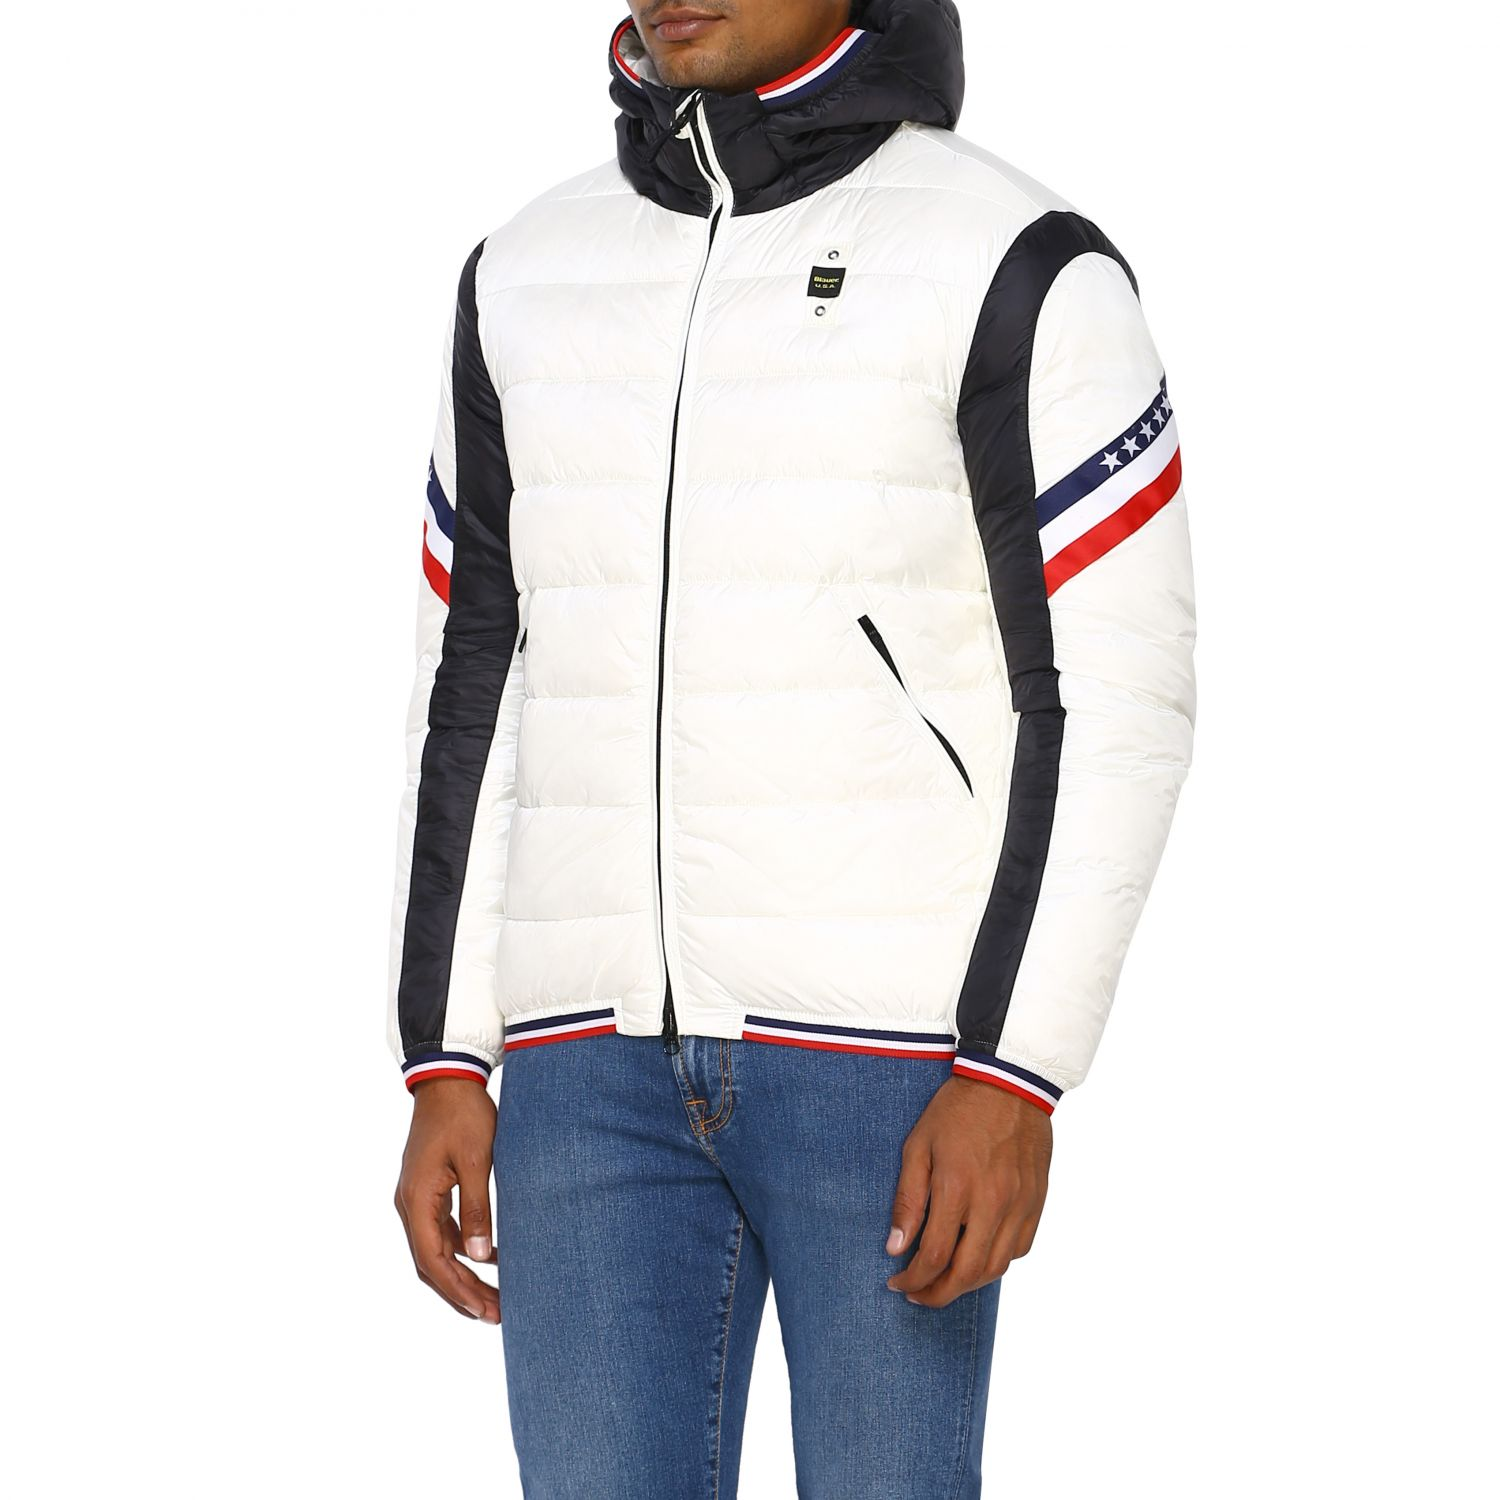 Jacket men Blauer white 4